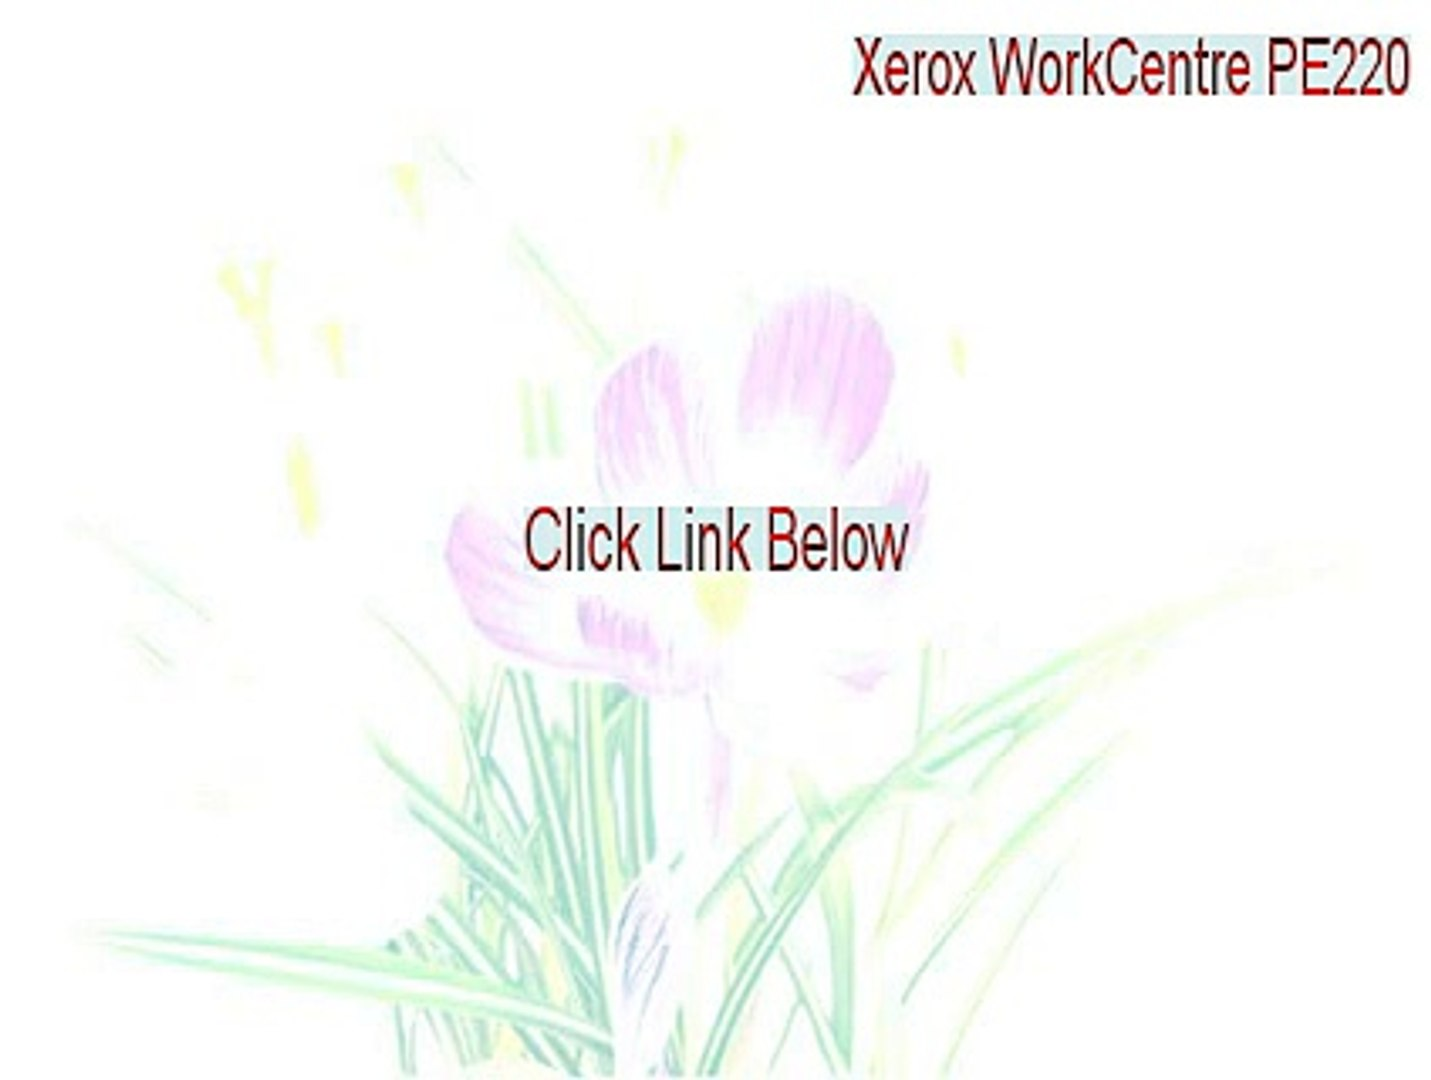 Xerox WorkCentre PE220 Full - xerox workcentre pe220 service manual [2015]